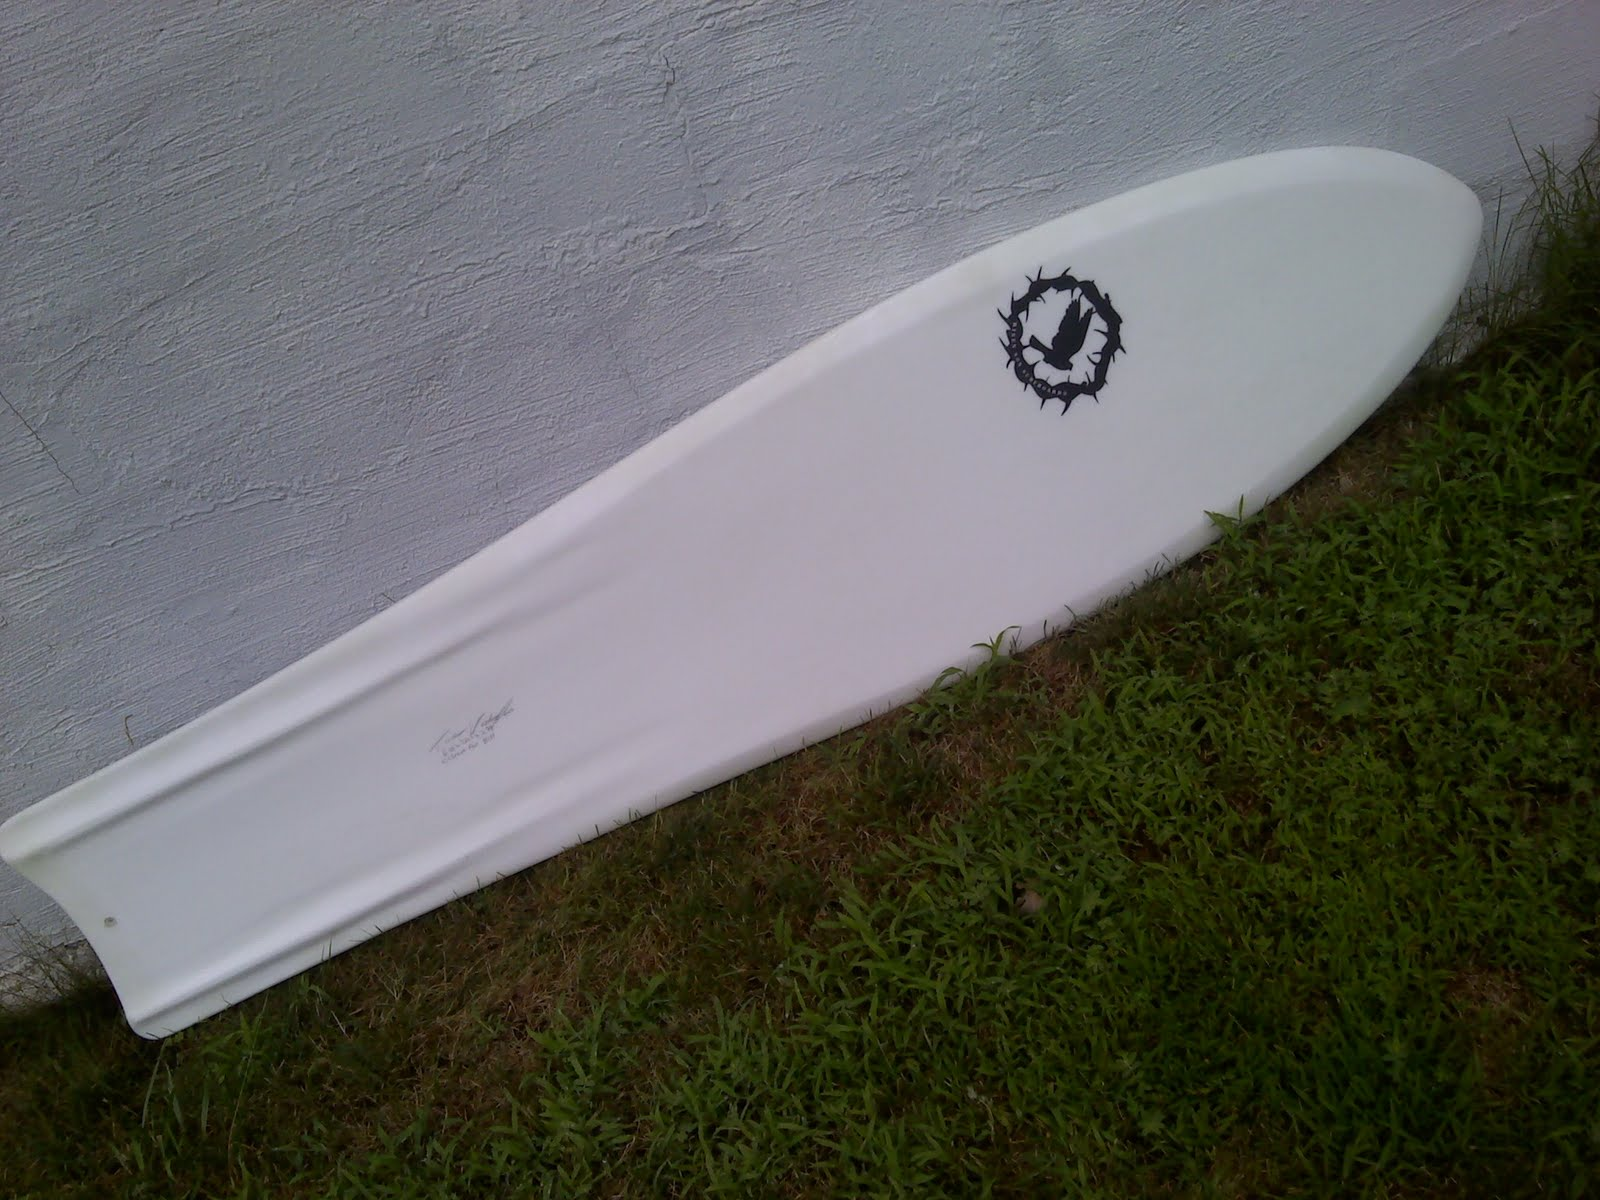 Risen sun surfboards and skimboard manufacturing new for Skimboard template